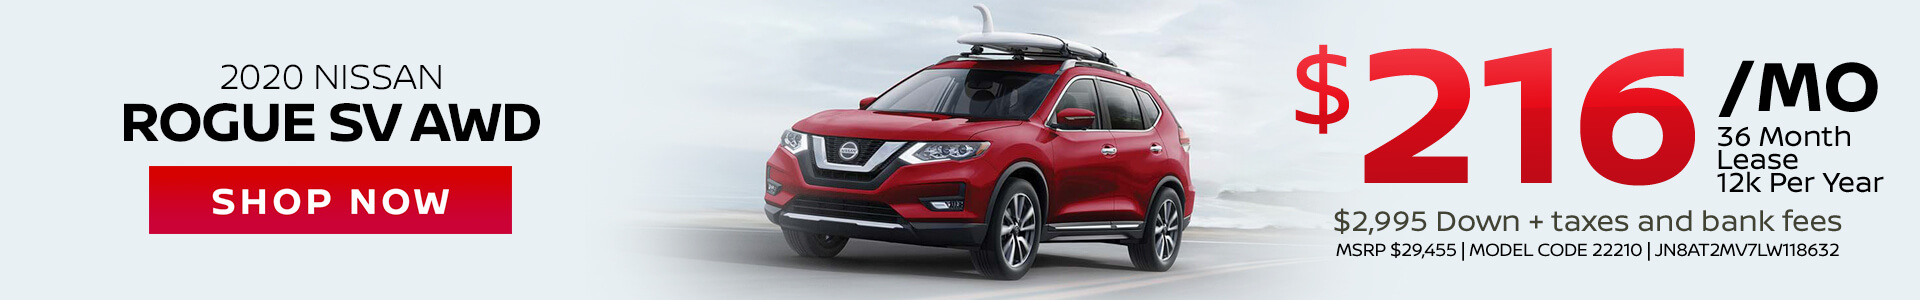 Nissan Rogue $216 Lease